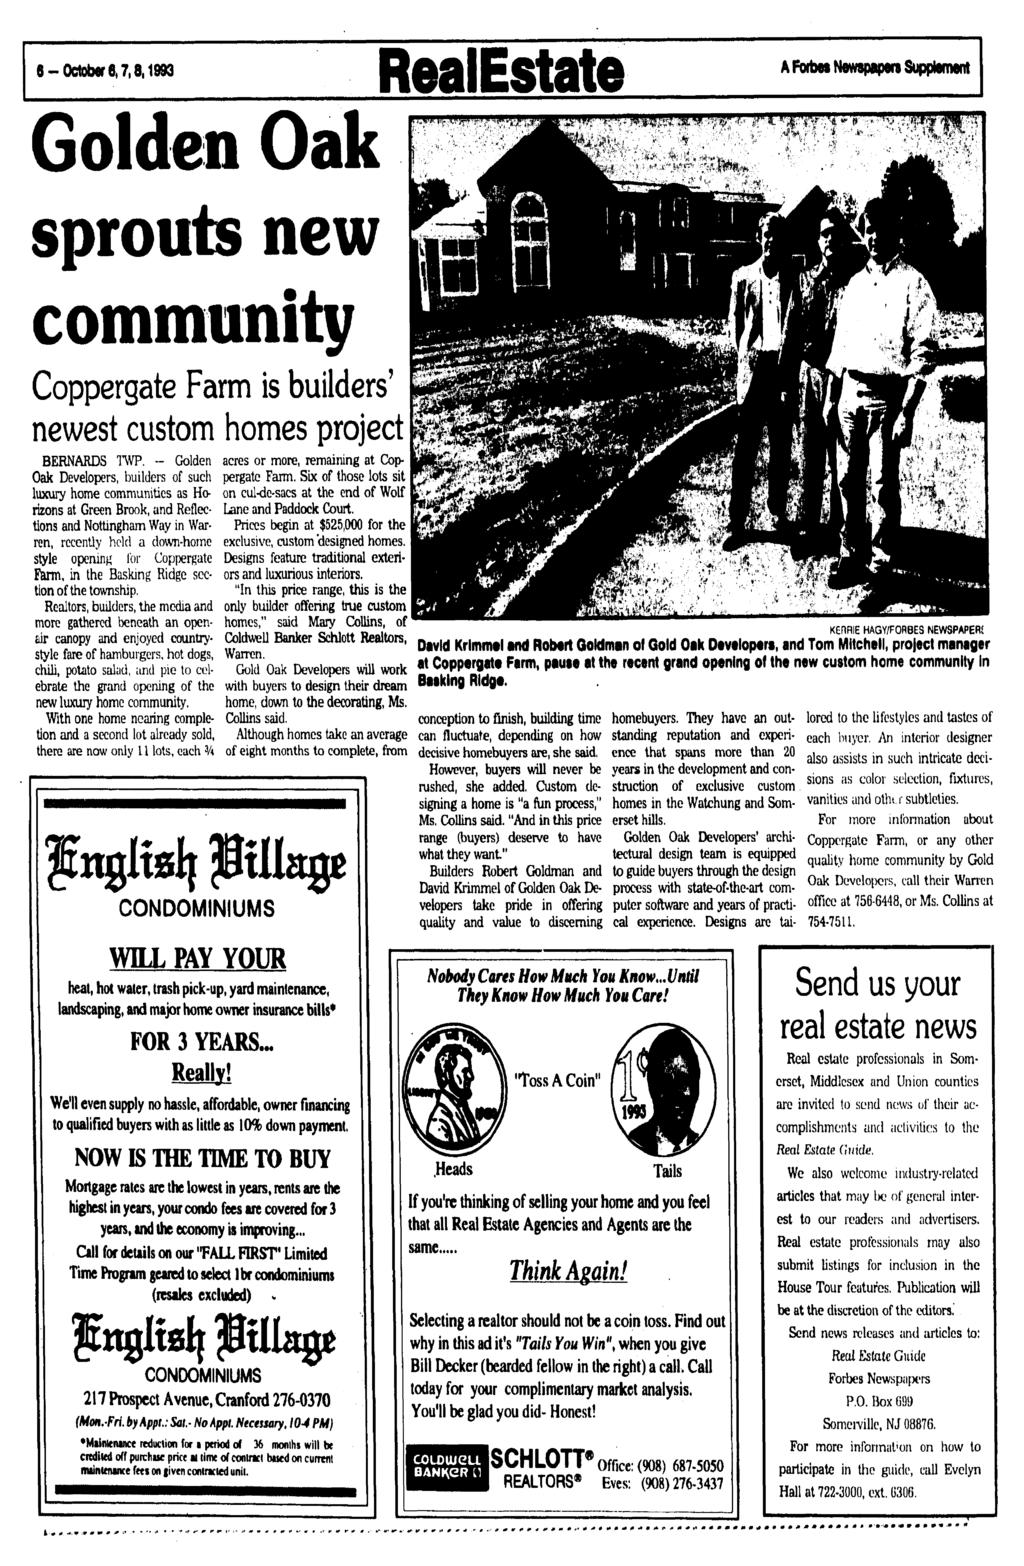 6-October 8,7,8,1993 RealEstate A Fbrbw Newspaper? Supplement Golden Oak sprouts new community Coppergate Farm is builders' newest custom homes project BERNARDS TWP.